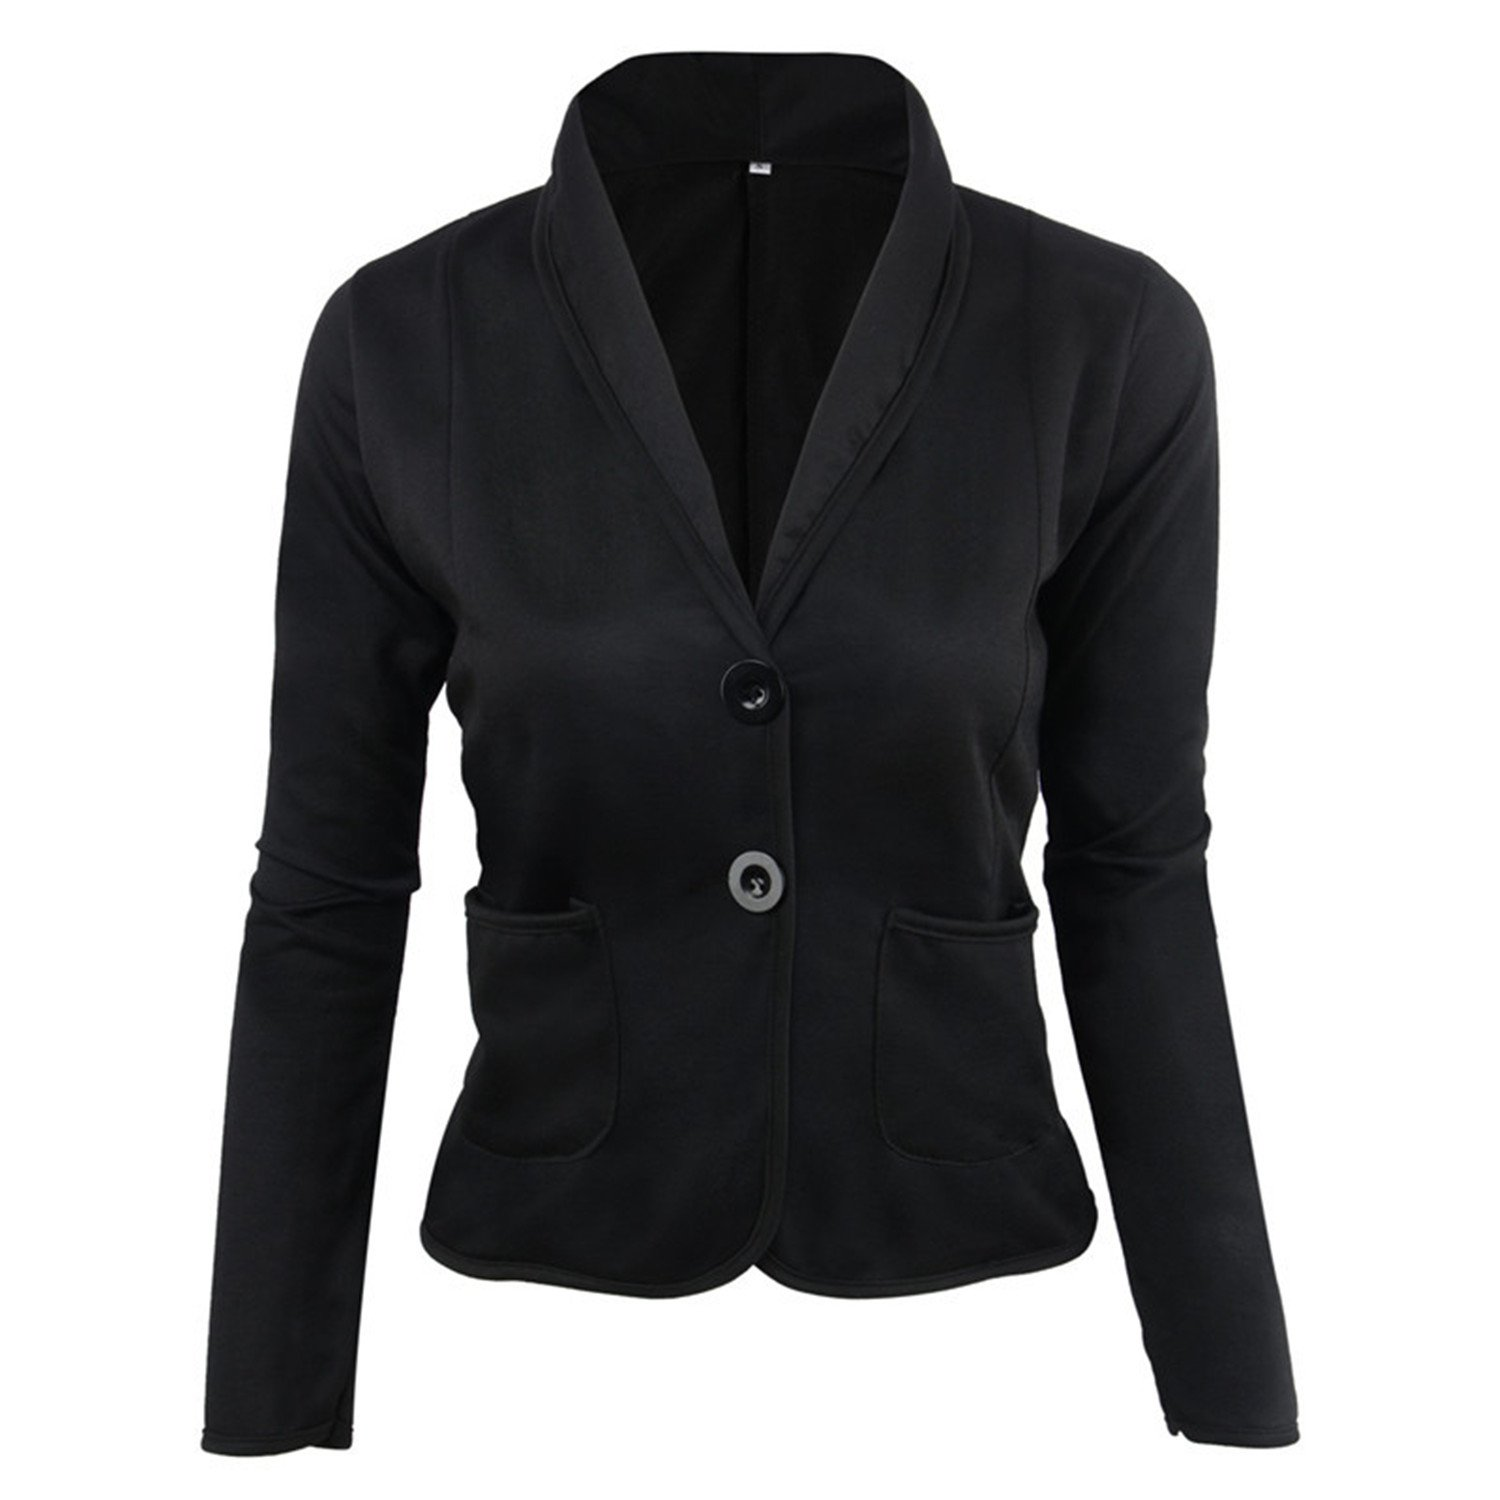 David Salc womens work jacket office blazers for women ...